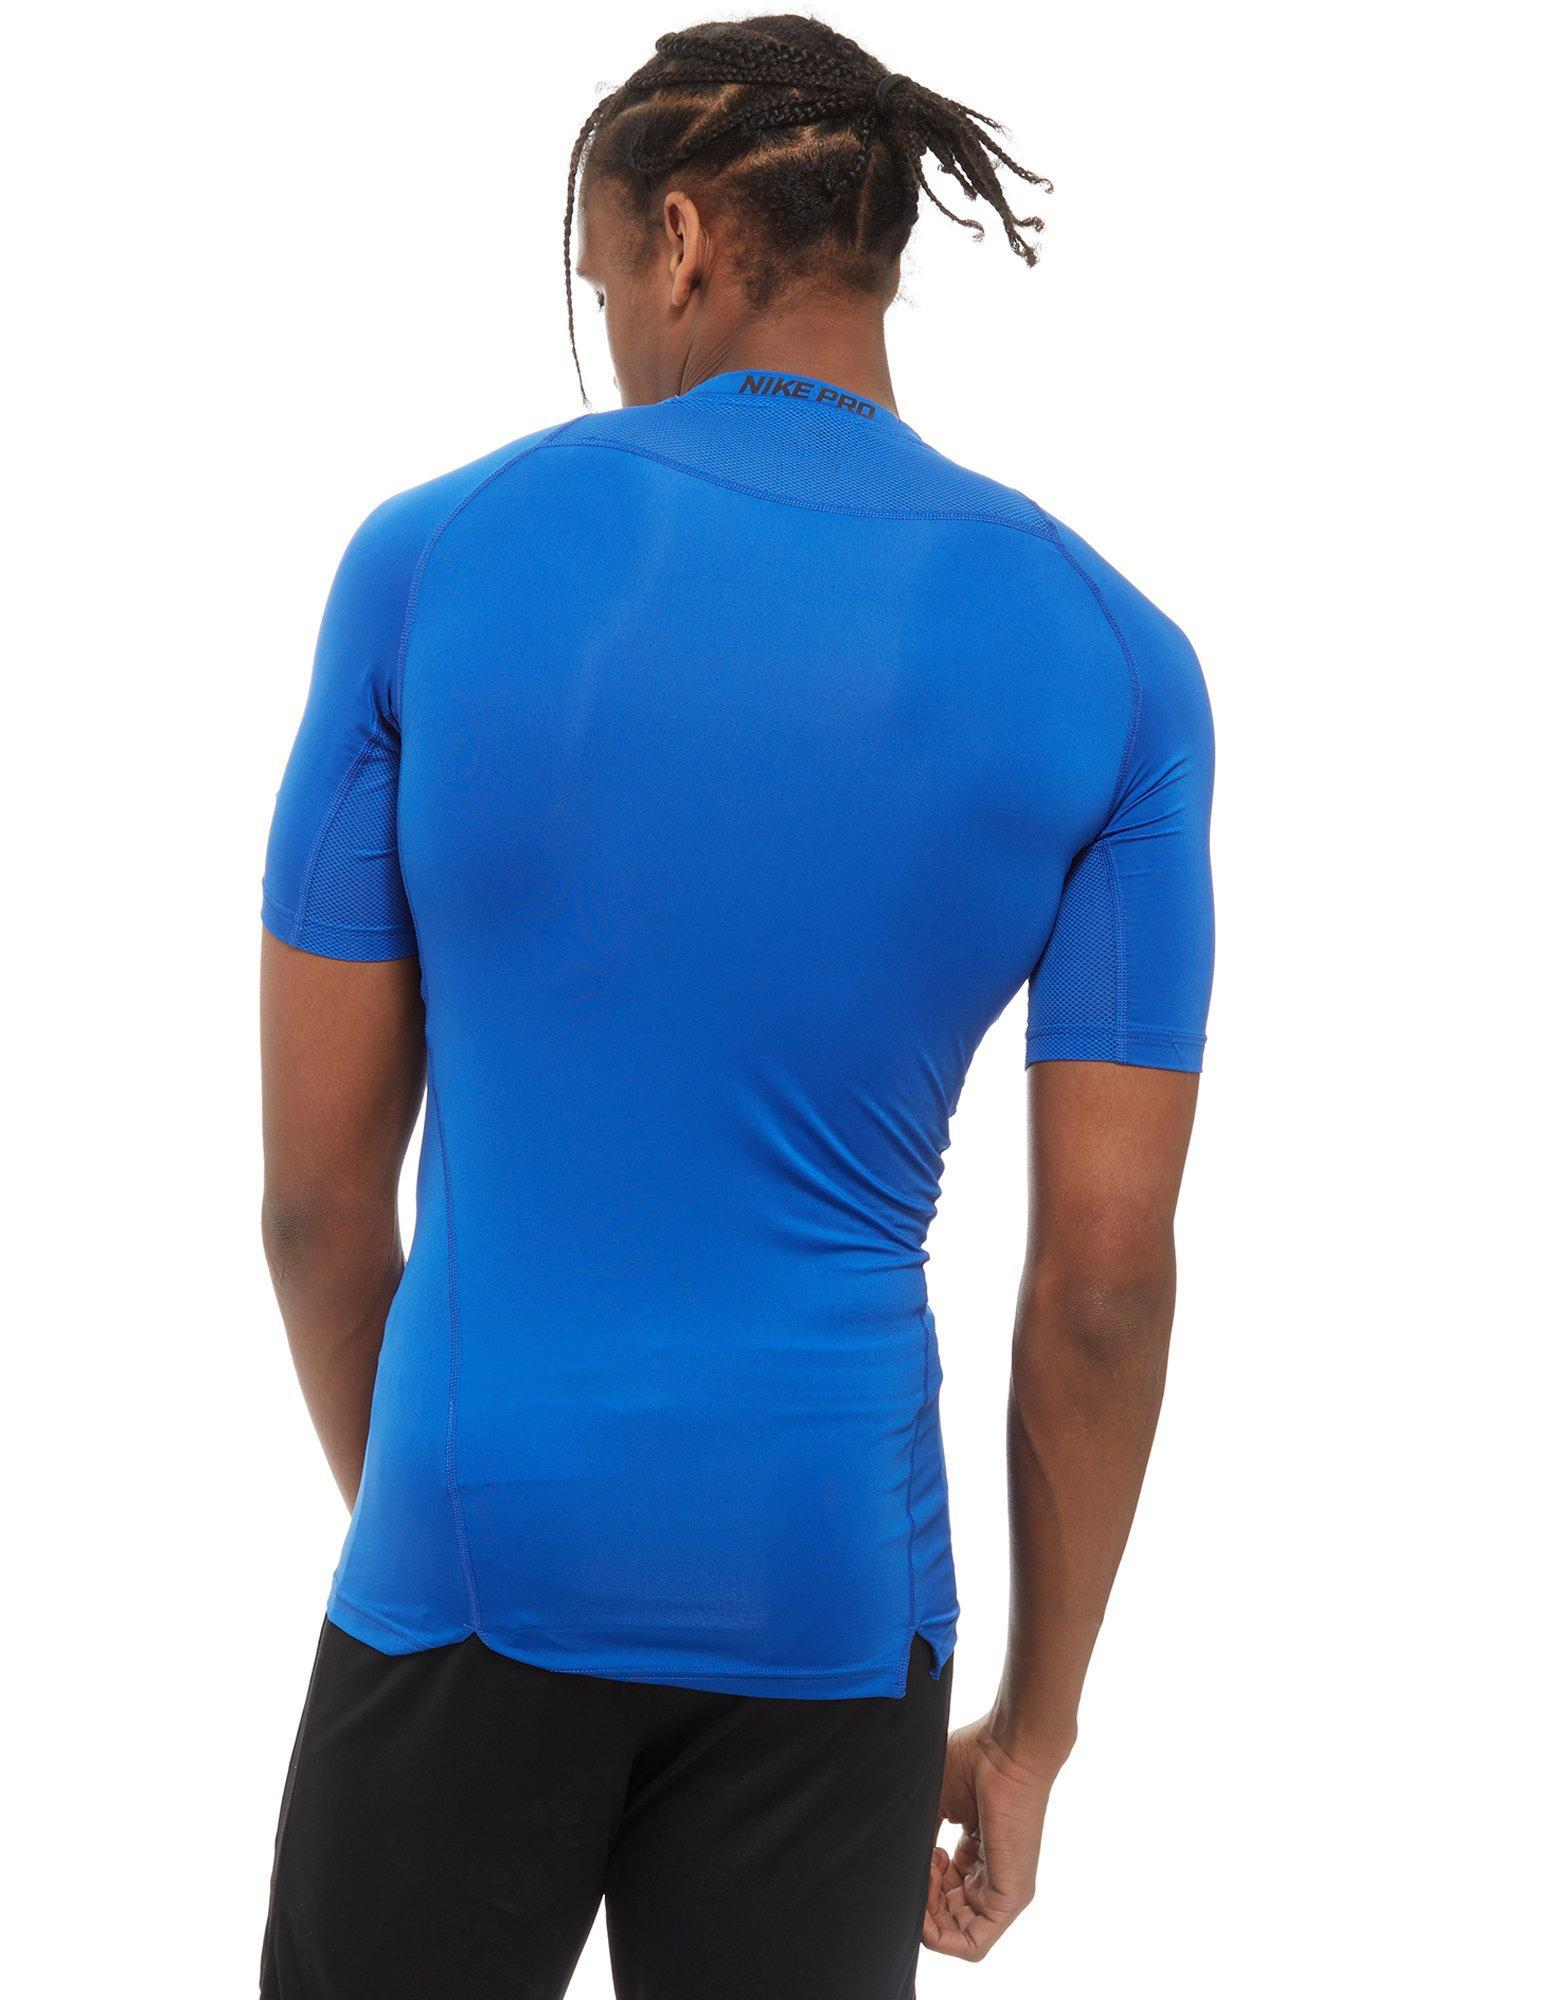 60017ba6e6 Lyst - Nike Pro Compression Short Sleeve Top in Blue for Men